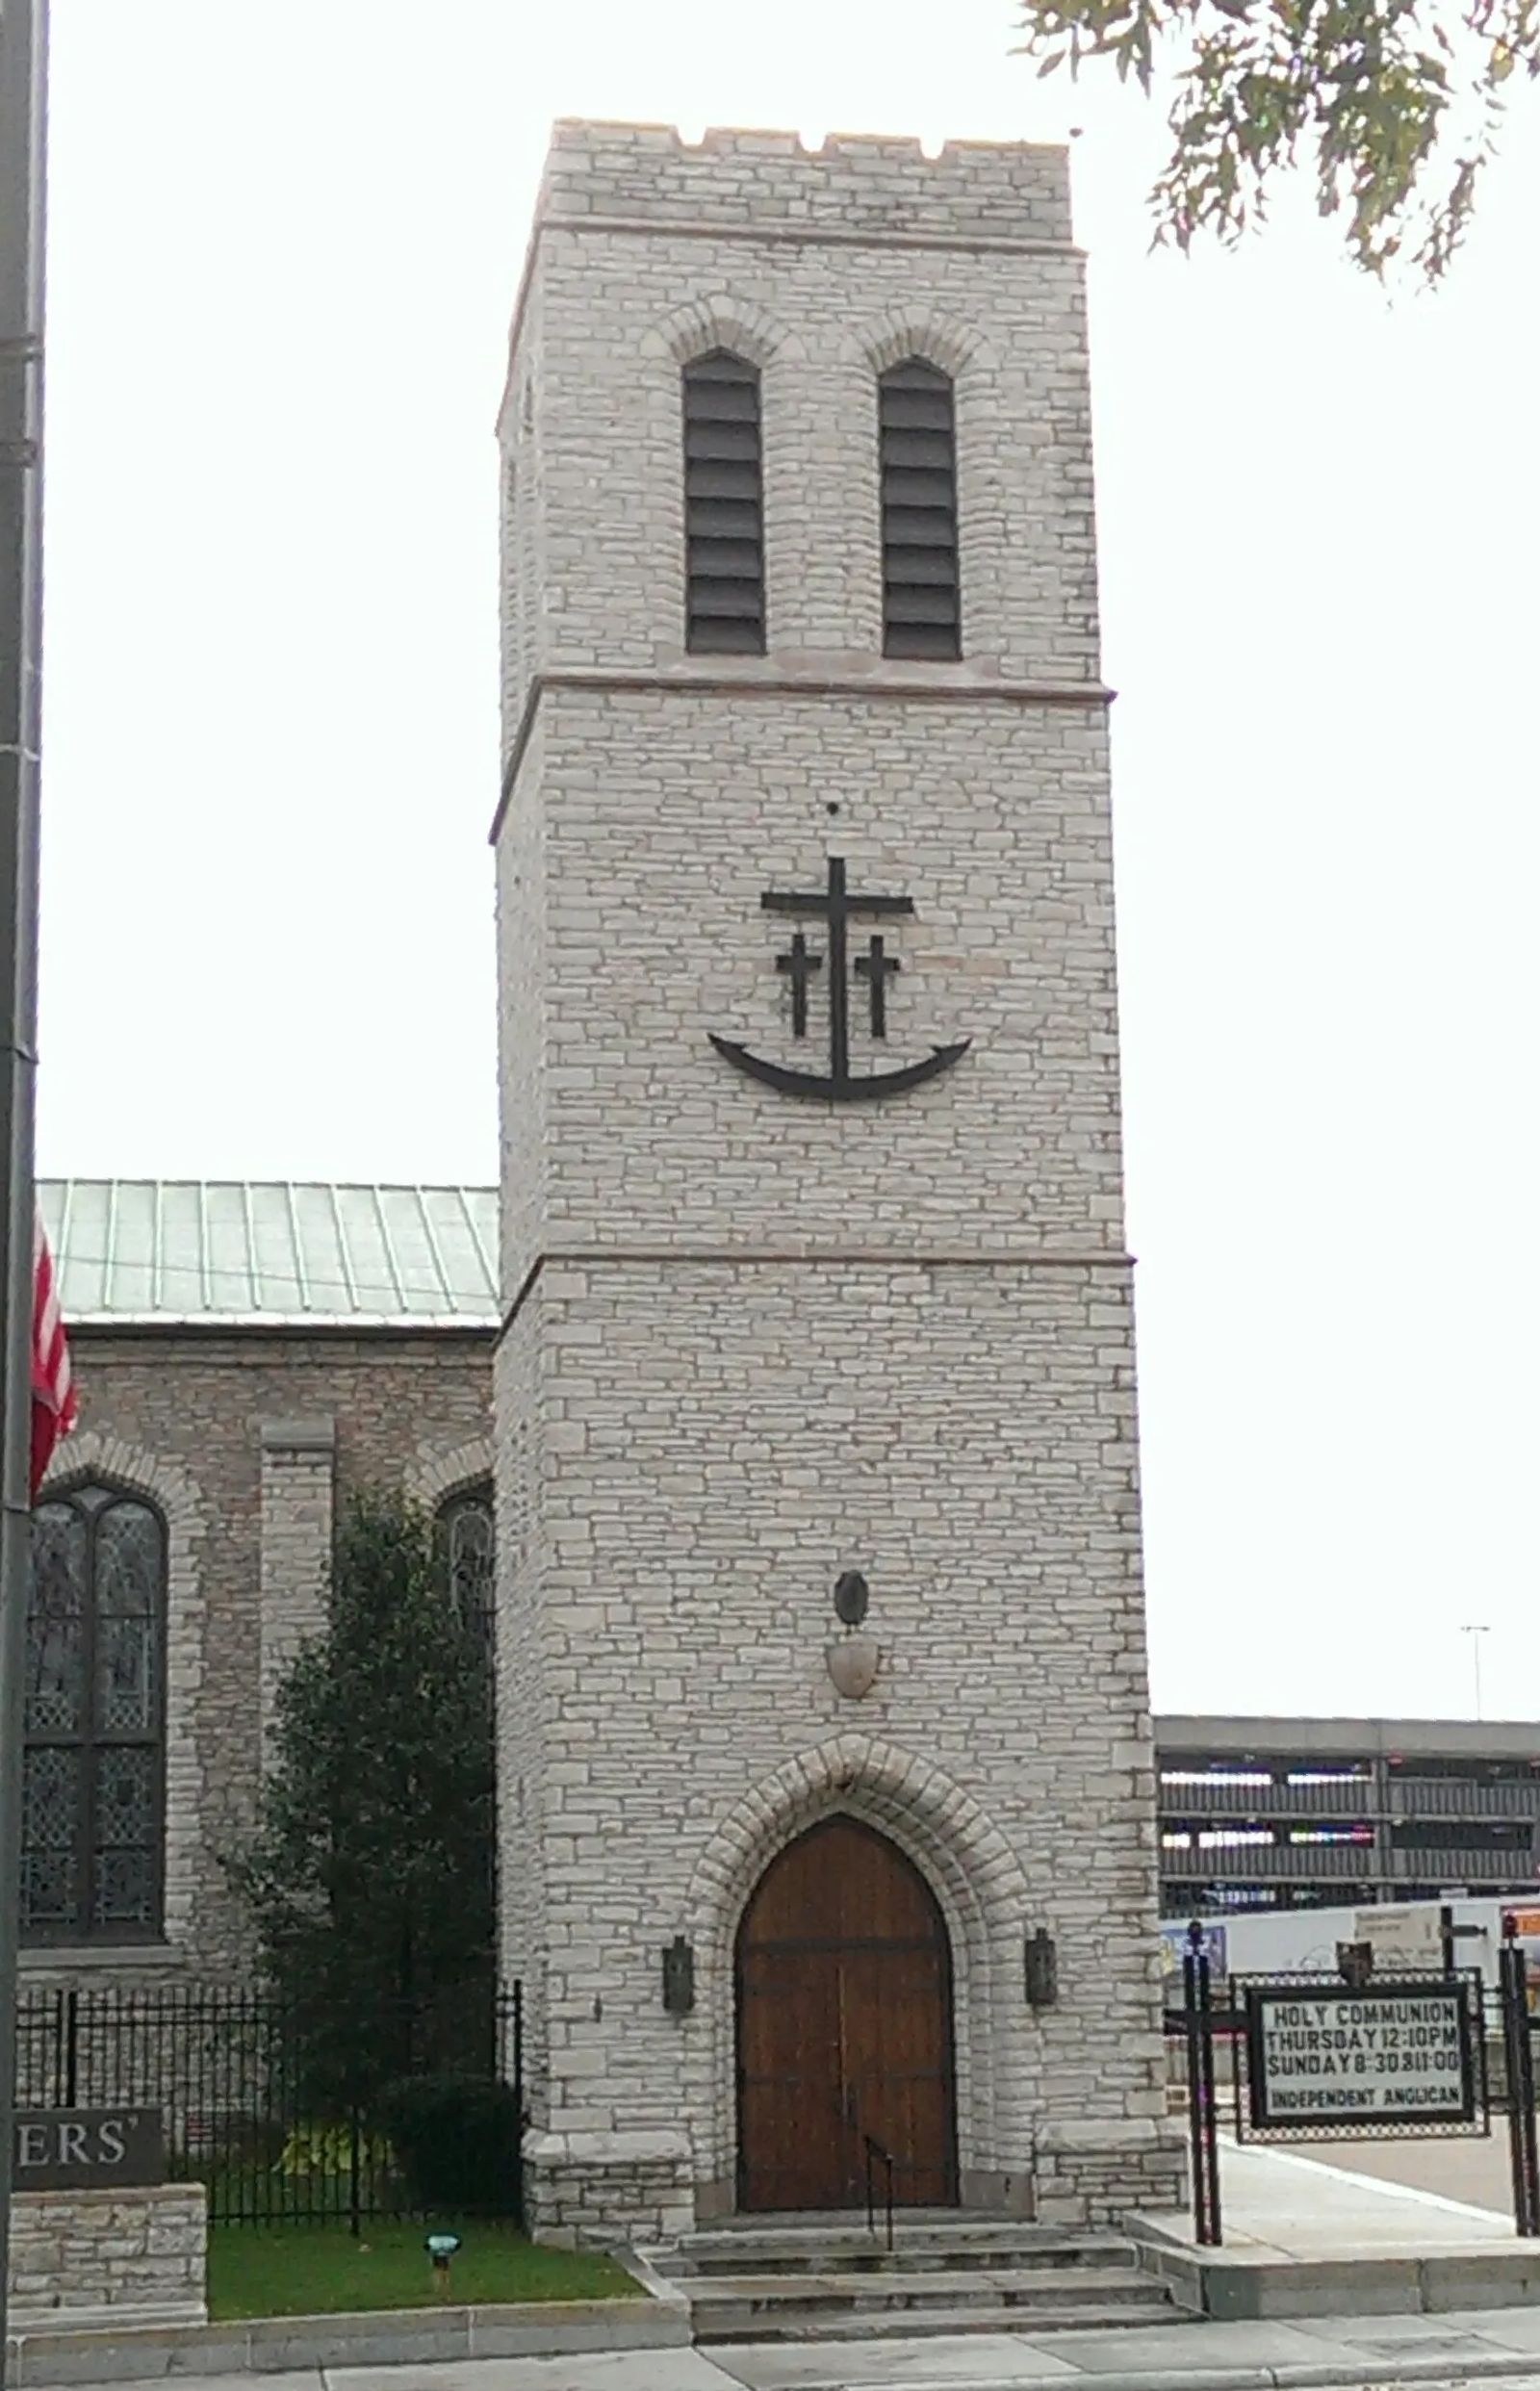 Photo of the bell tower of the old mariners' church, in Detroit, Michigan